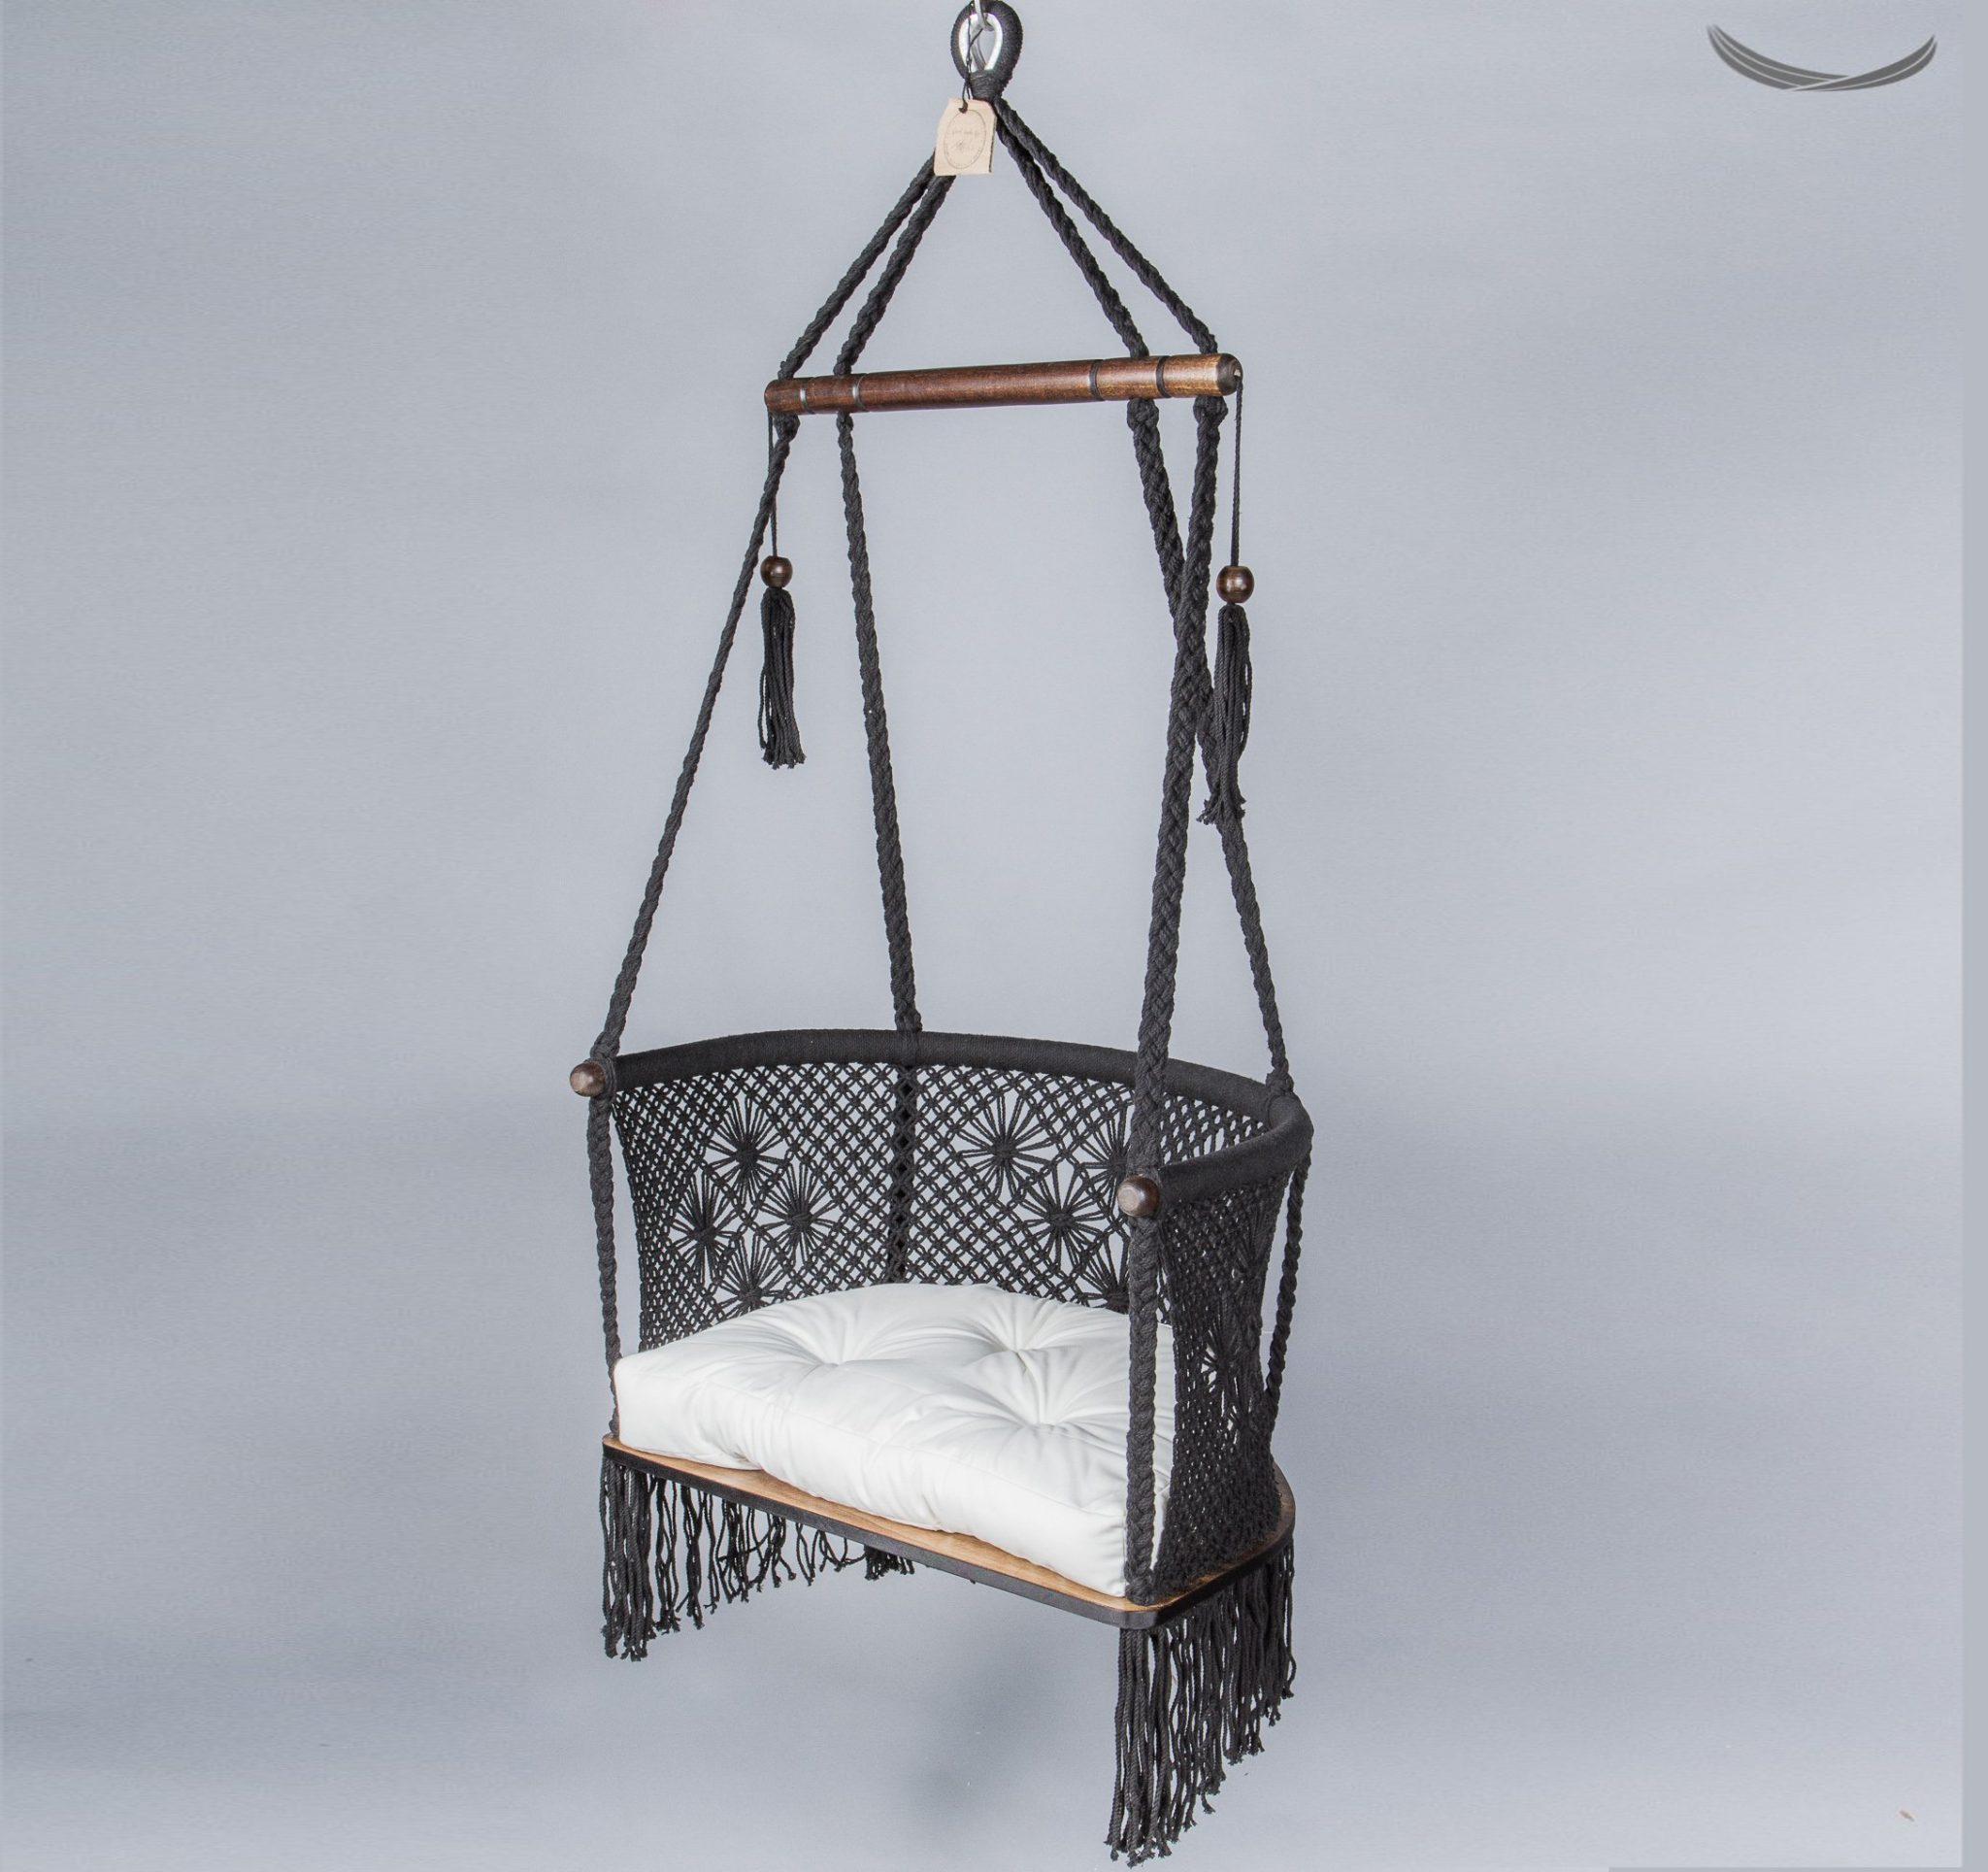 Stylish Macrame Hanging Chair by Hang A Hammock Collective